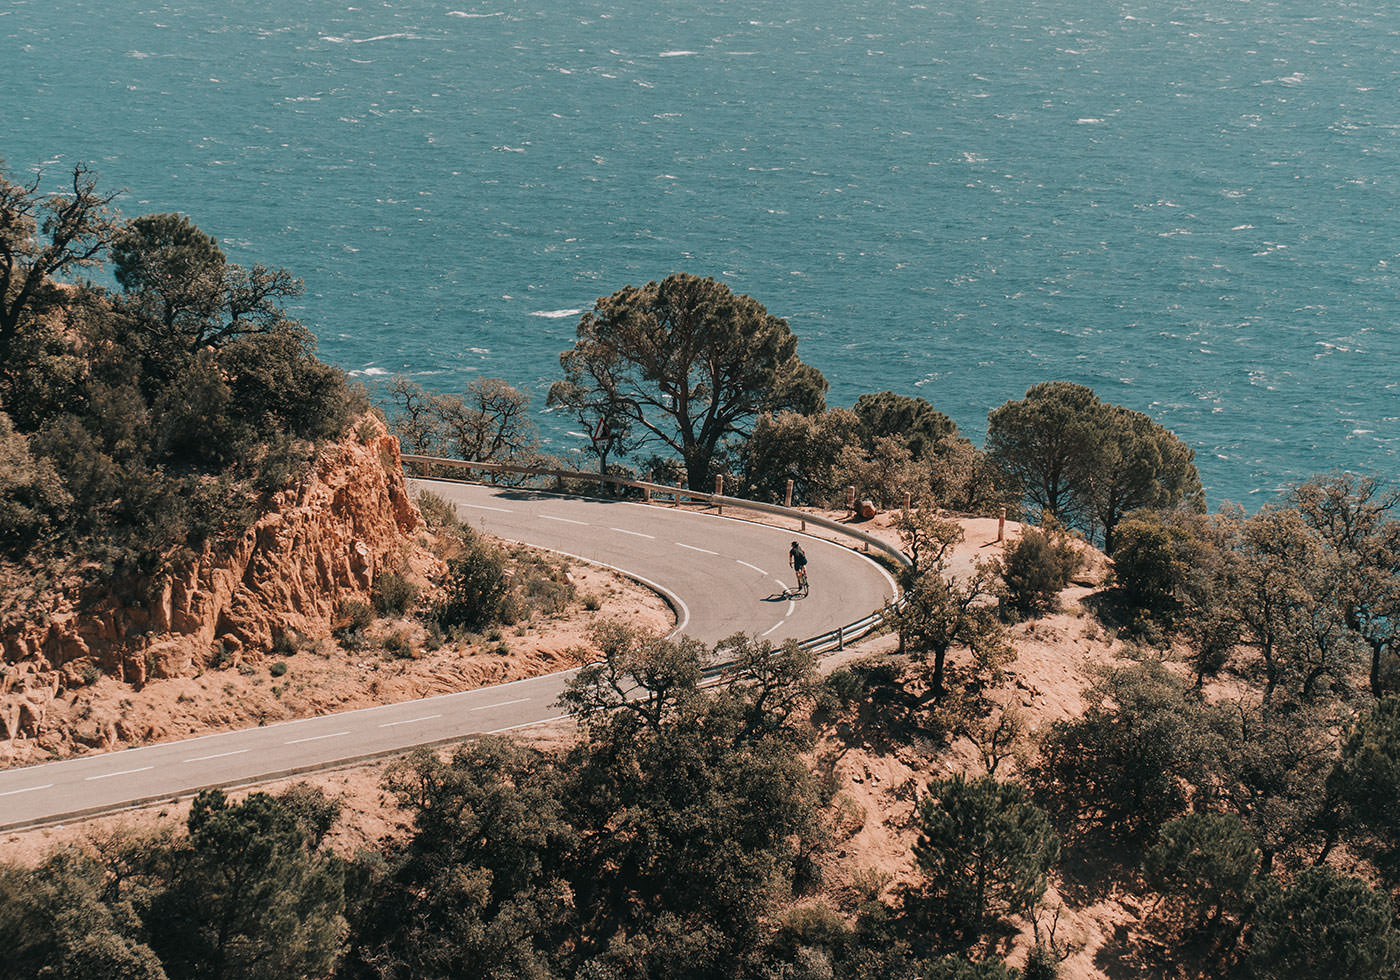 Road Cycling by the coast in Catalonia